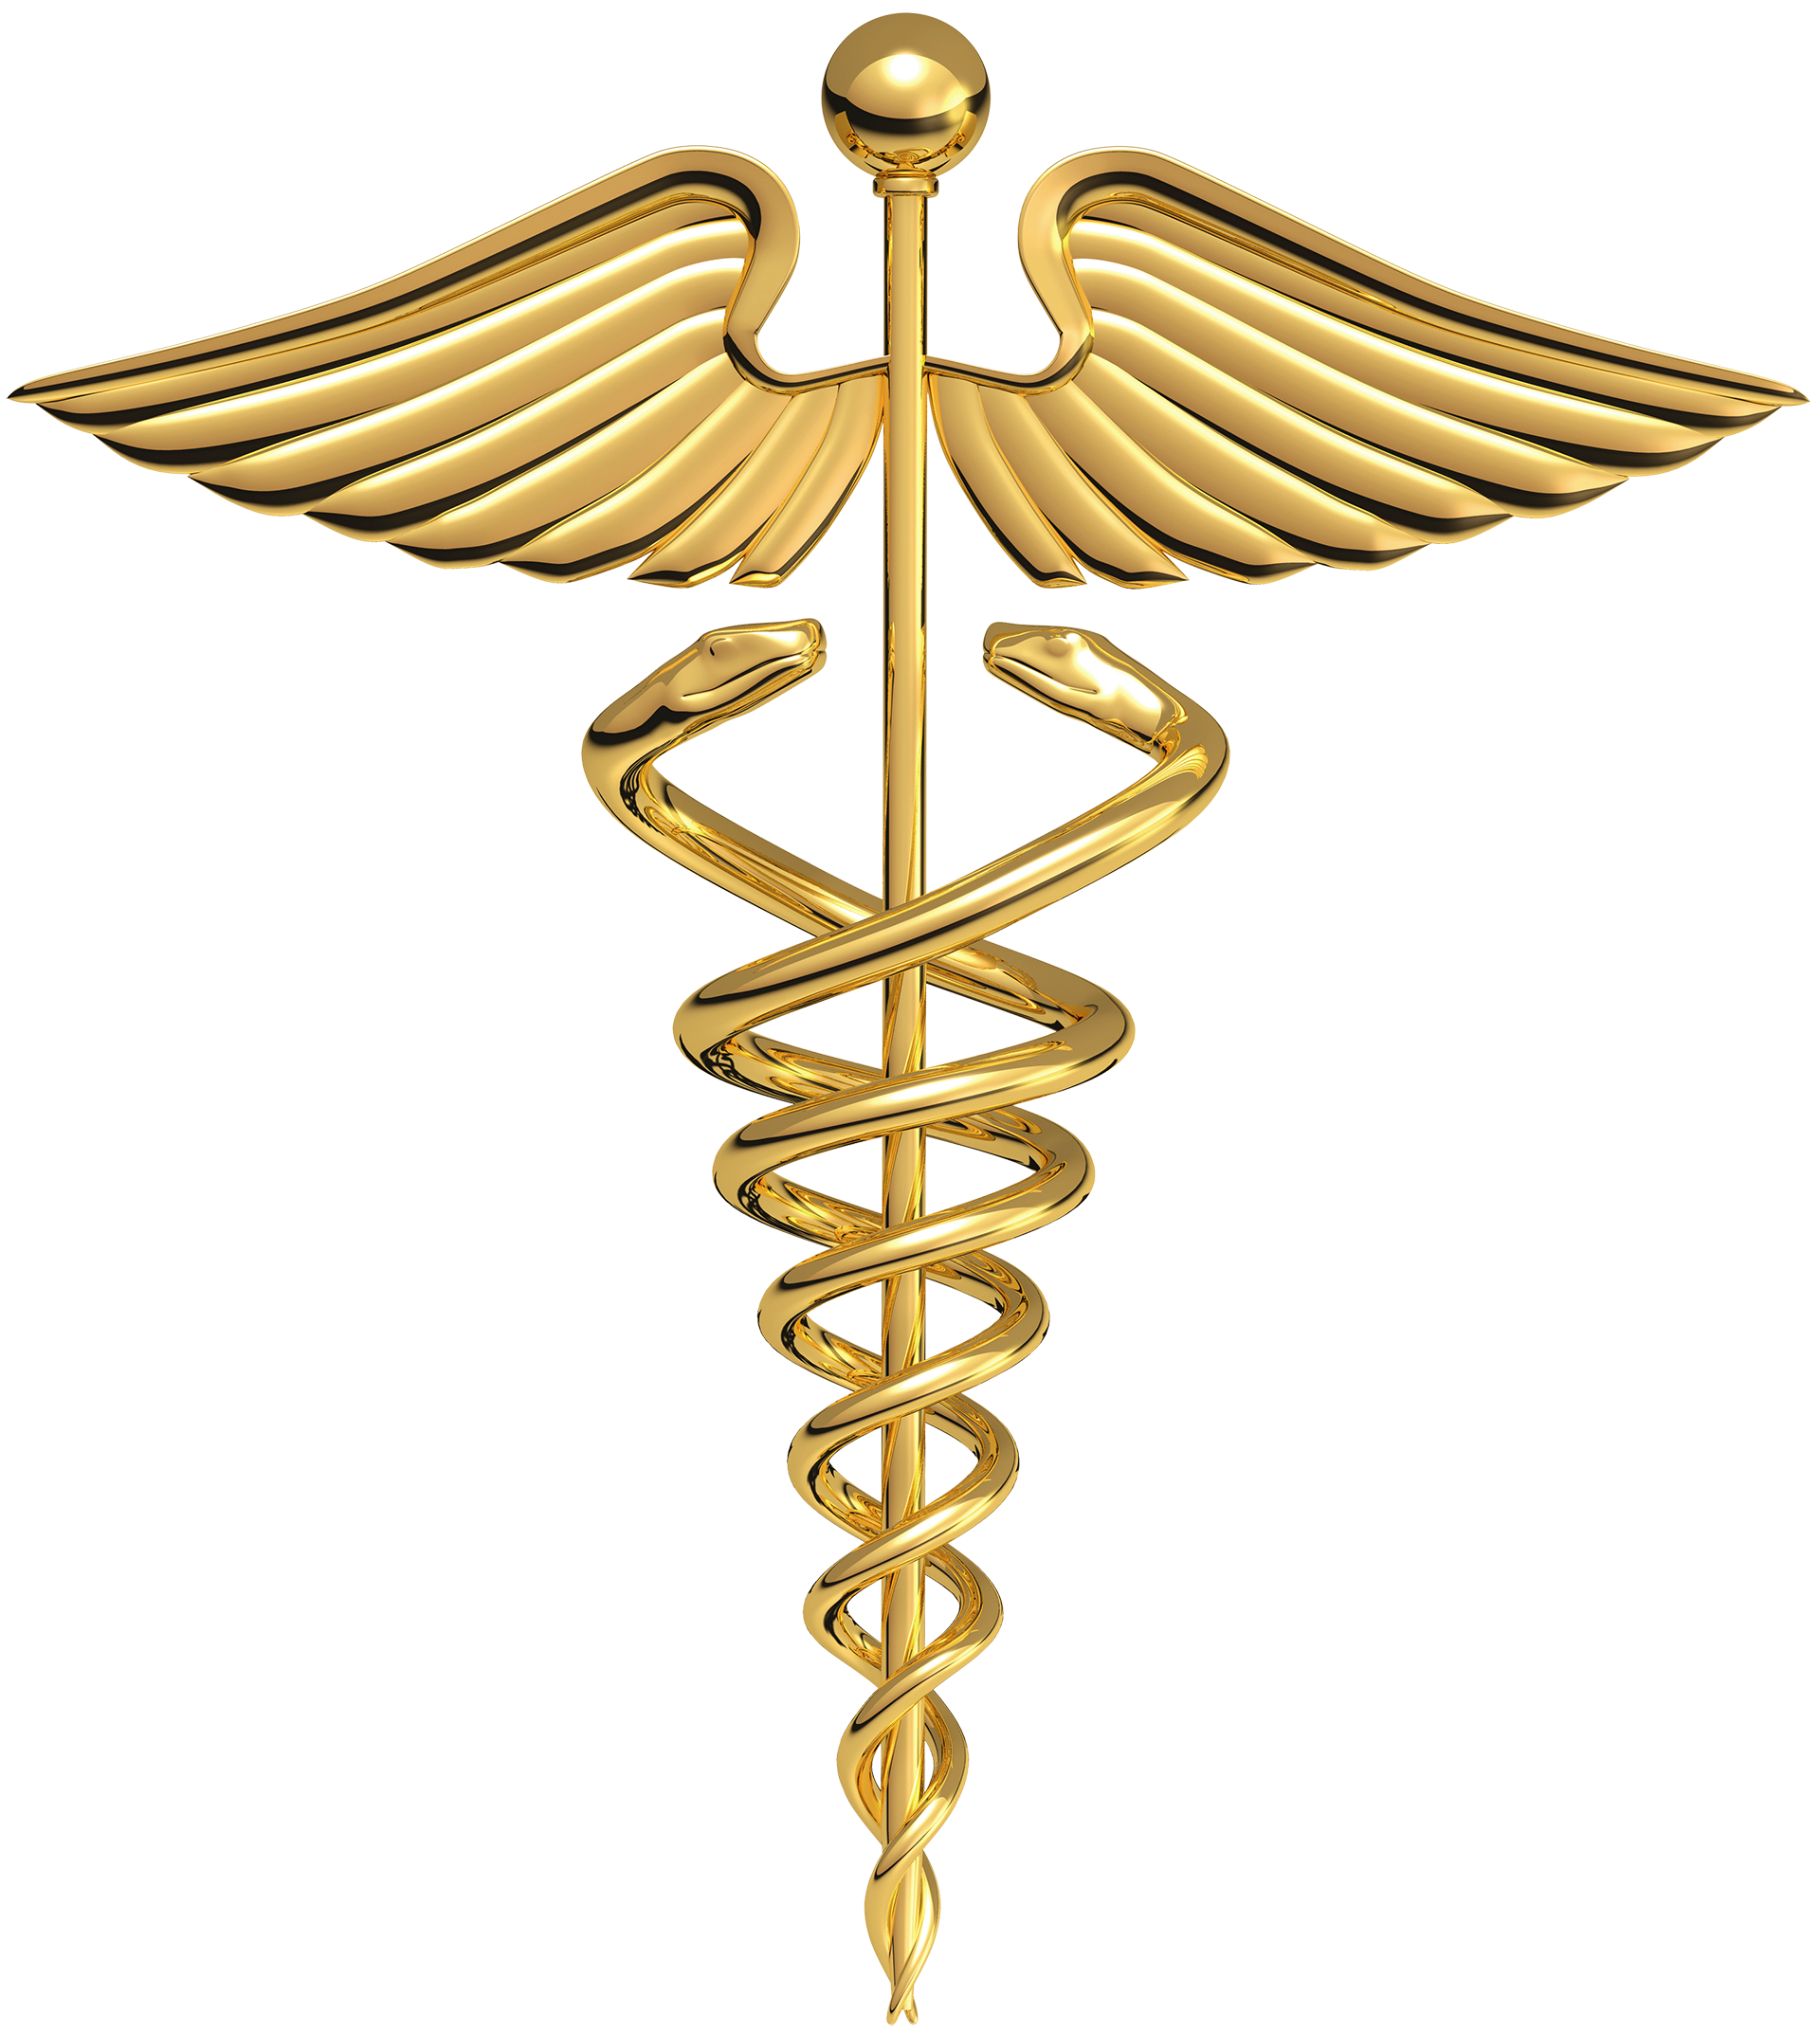 Caduceus - HEALTH - Messenger of the gods - COMPASSION - MERCY - BENEVOLENCE - BE HUMANE - BE KIND - BE GENTLE - DO NO HARM - FEAR NOT - BE NOT AFRAID - CAUSE NO PAIN - BE AS PAINLESS AS POSSIBLE - CAUSE NO FEAR - DO NOT BE SCARY - DO NOT PUNISH - DO NOT MAKE THREATS - DO NOT BE COERCIVE - BE PERMISSIVE - BE TOLERANT - USE BIRTH CONTROL - PERMIT DIVORCE - EMPATHY IS CRITICAL - RESPECT FOR THE DIGNITY OF ALL HUMAN BEINGS IS CRITICAL - FREE UNIVERSAL HEALTH CARE - FREE UNIVERSAL EDUCATION - UNIVERSAL HOME OWNERSHIP